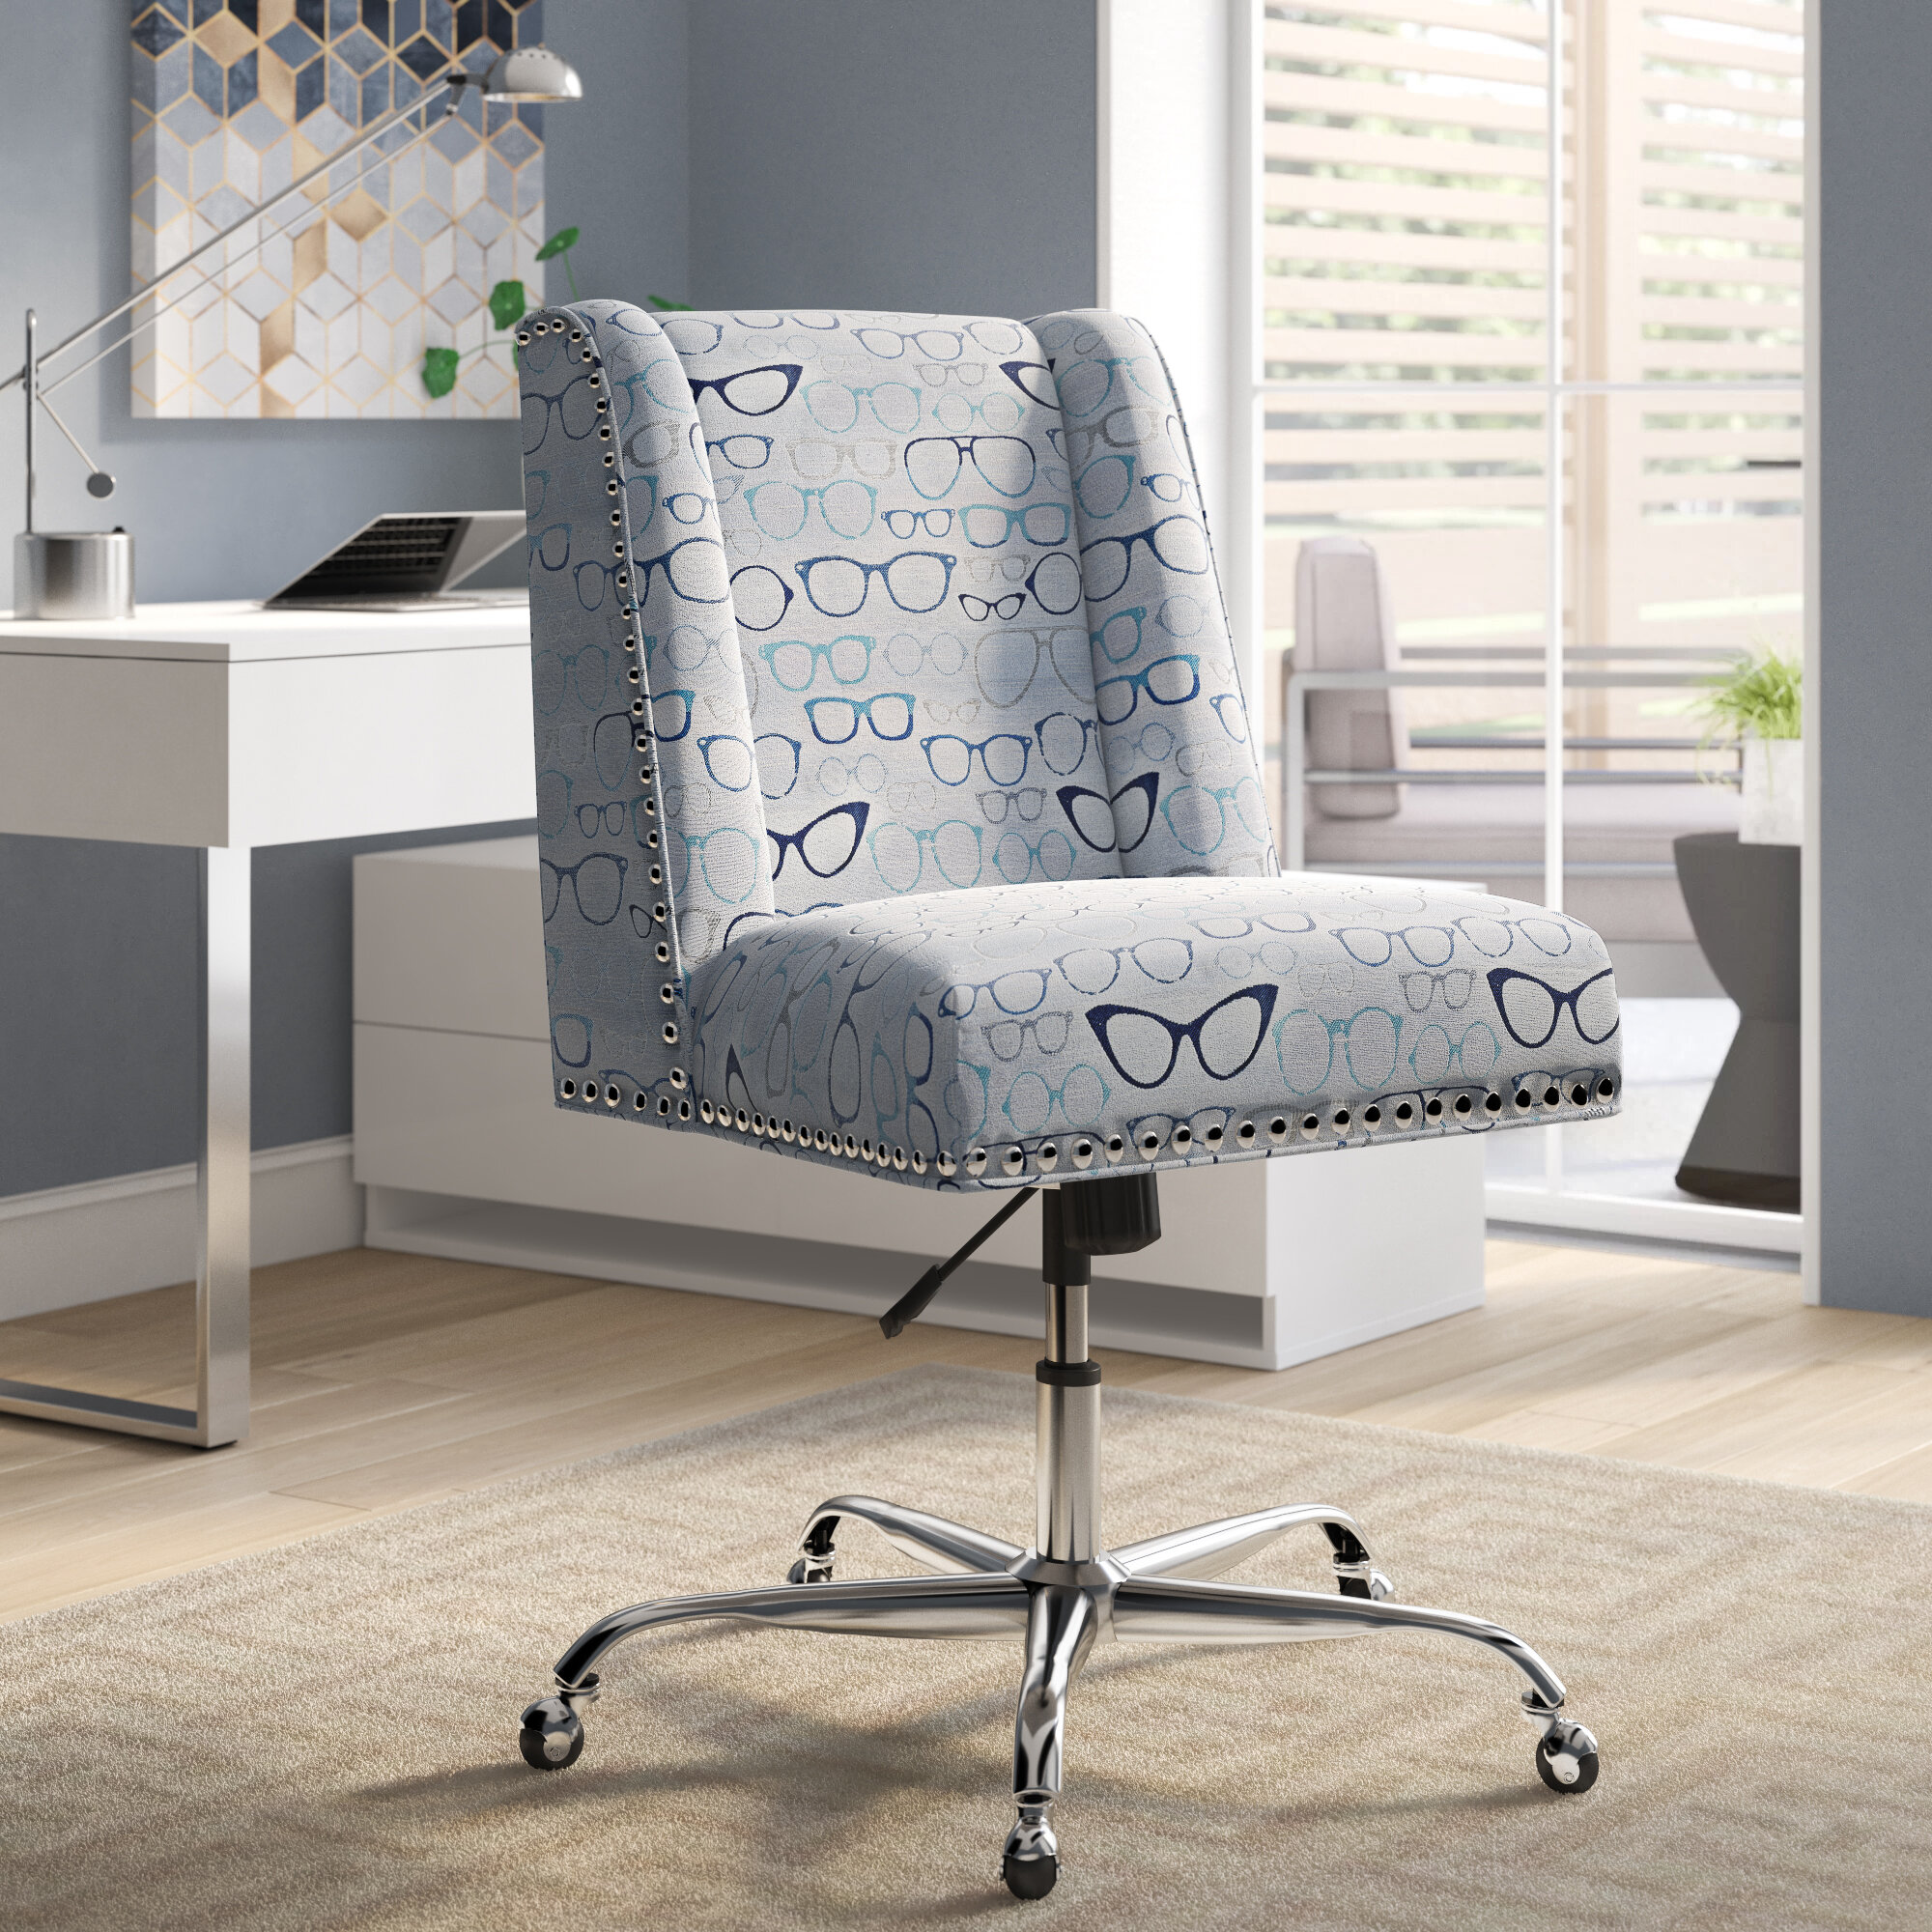 Melyna task chair accessories